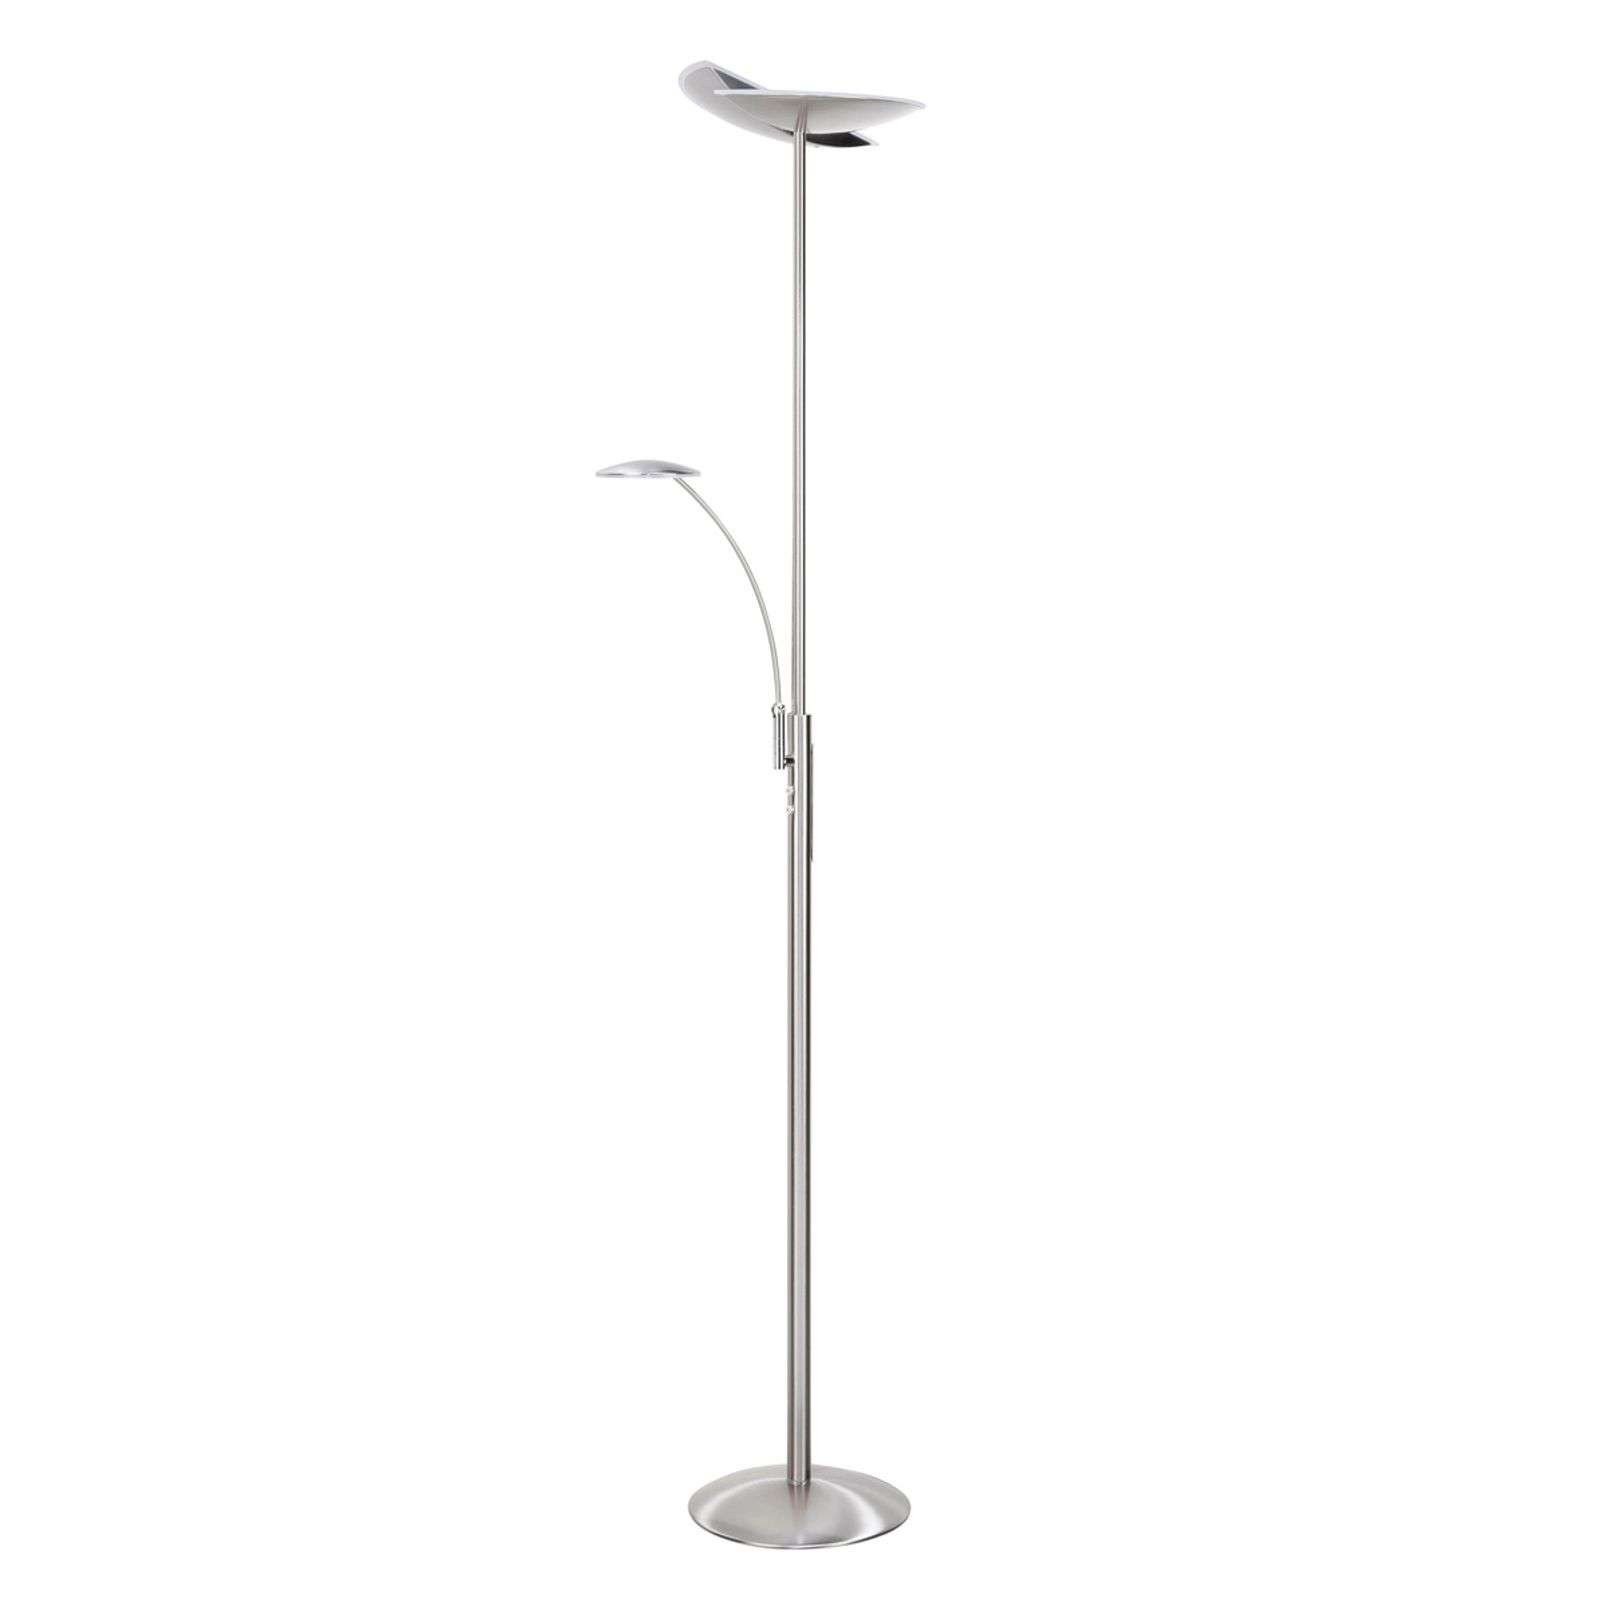 Sapporo - lampadaire à éclairage indirect dimmable